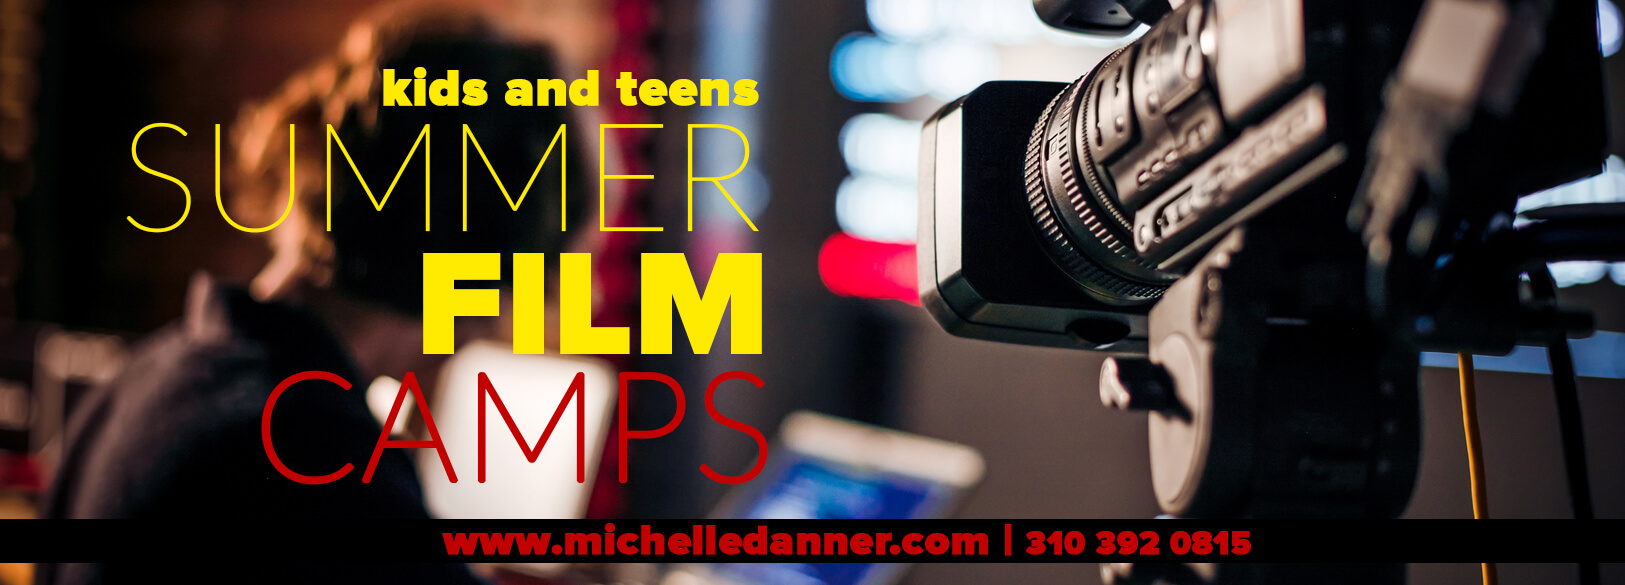 Kids summer film camps with info